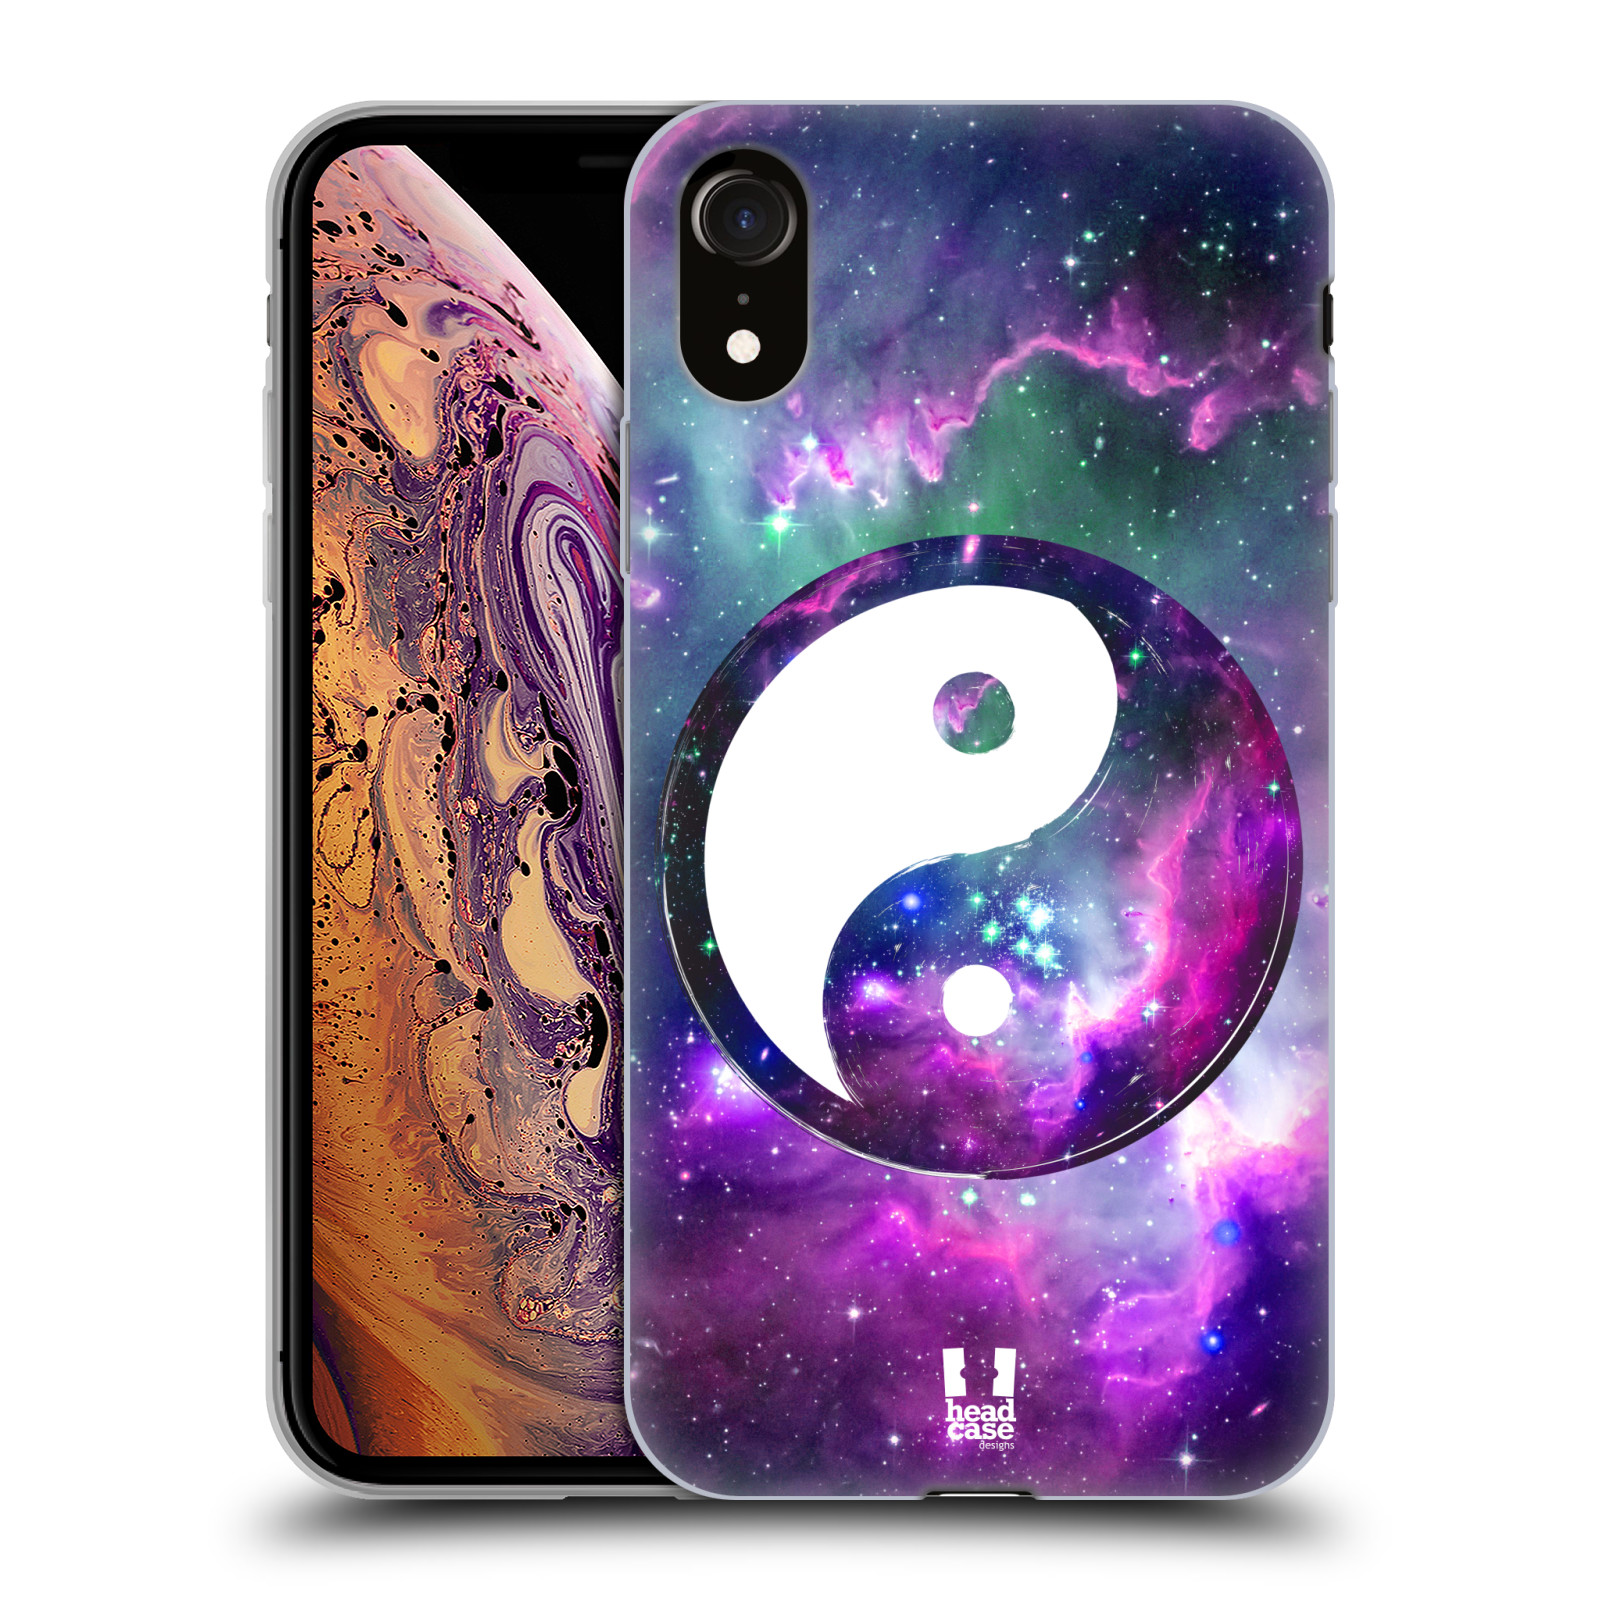 Silikonové pouzdro na mobil Apple iPhone XR - Head Case - YIn a Yang PURPLE